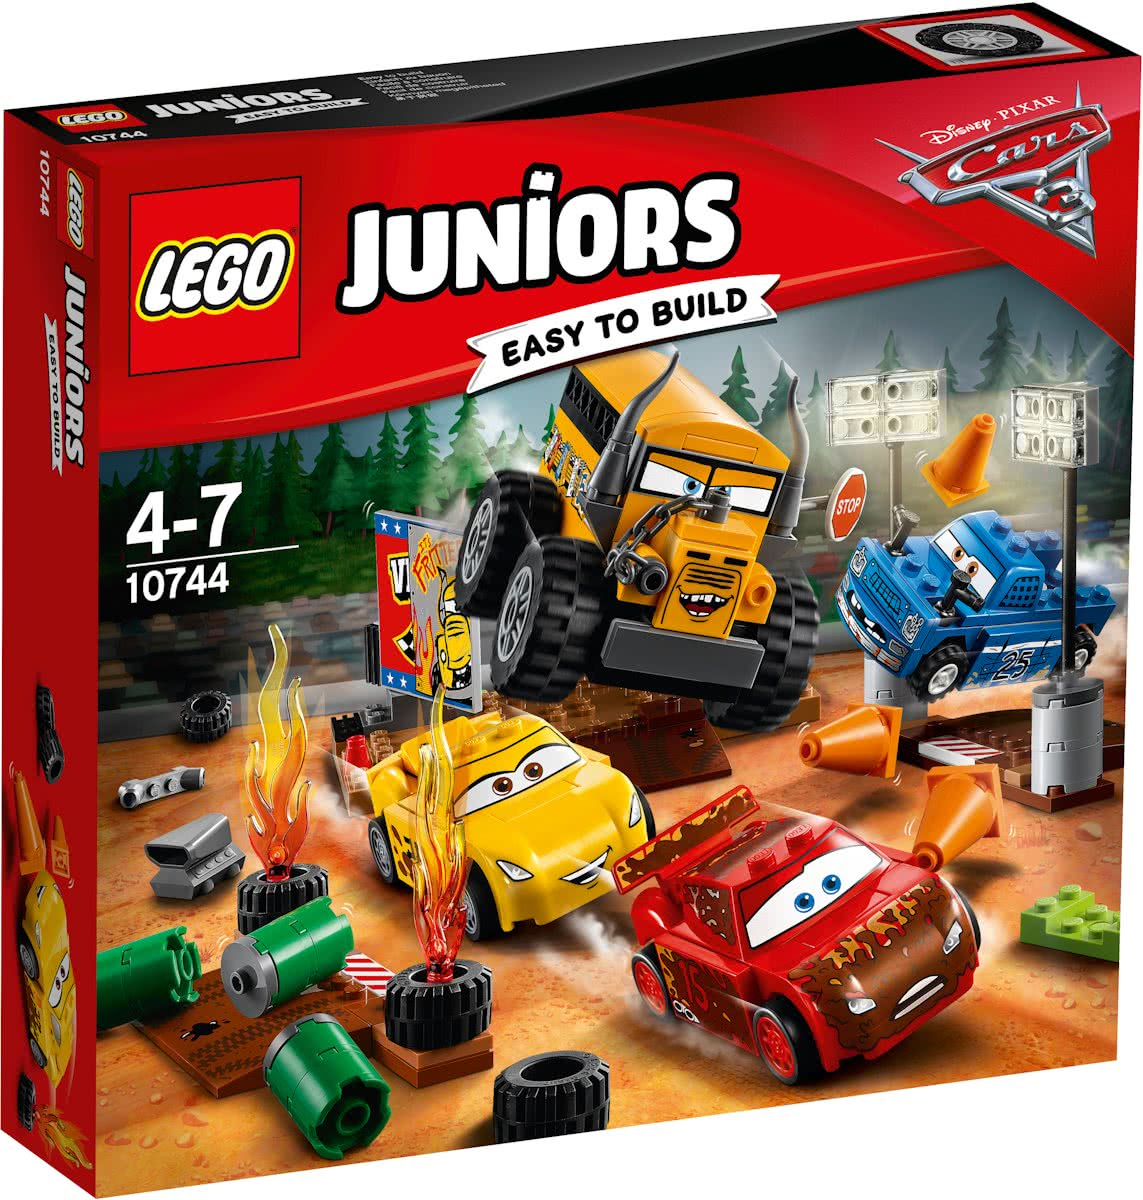 LEGO Juniors Cars 3 Thunder Hollow Crazy 8 Race - 10744